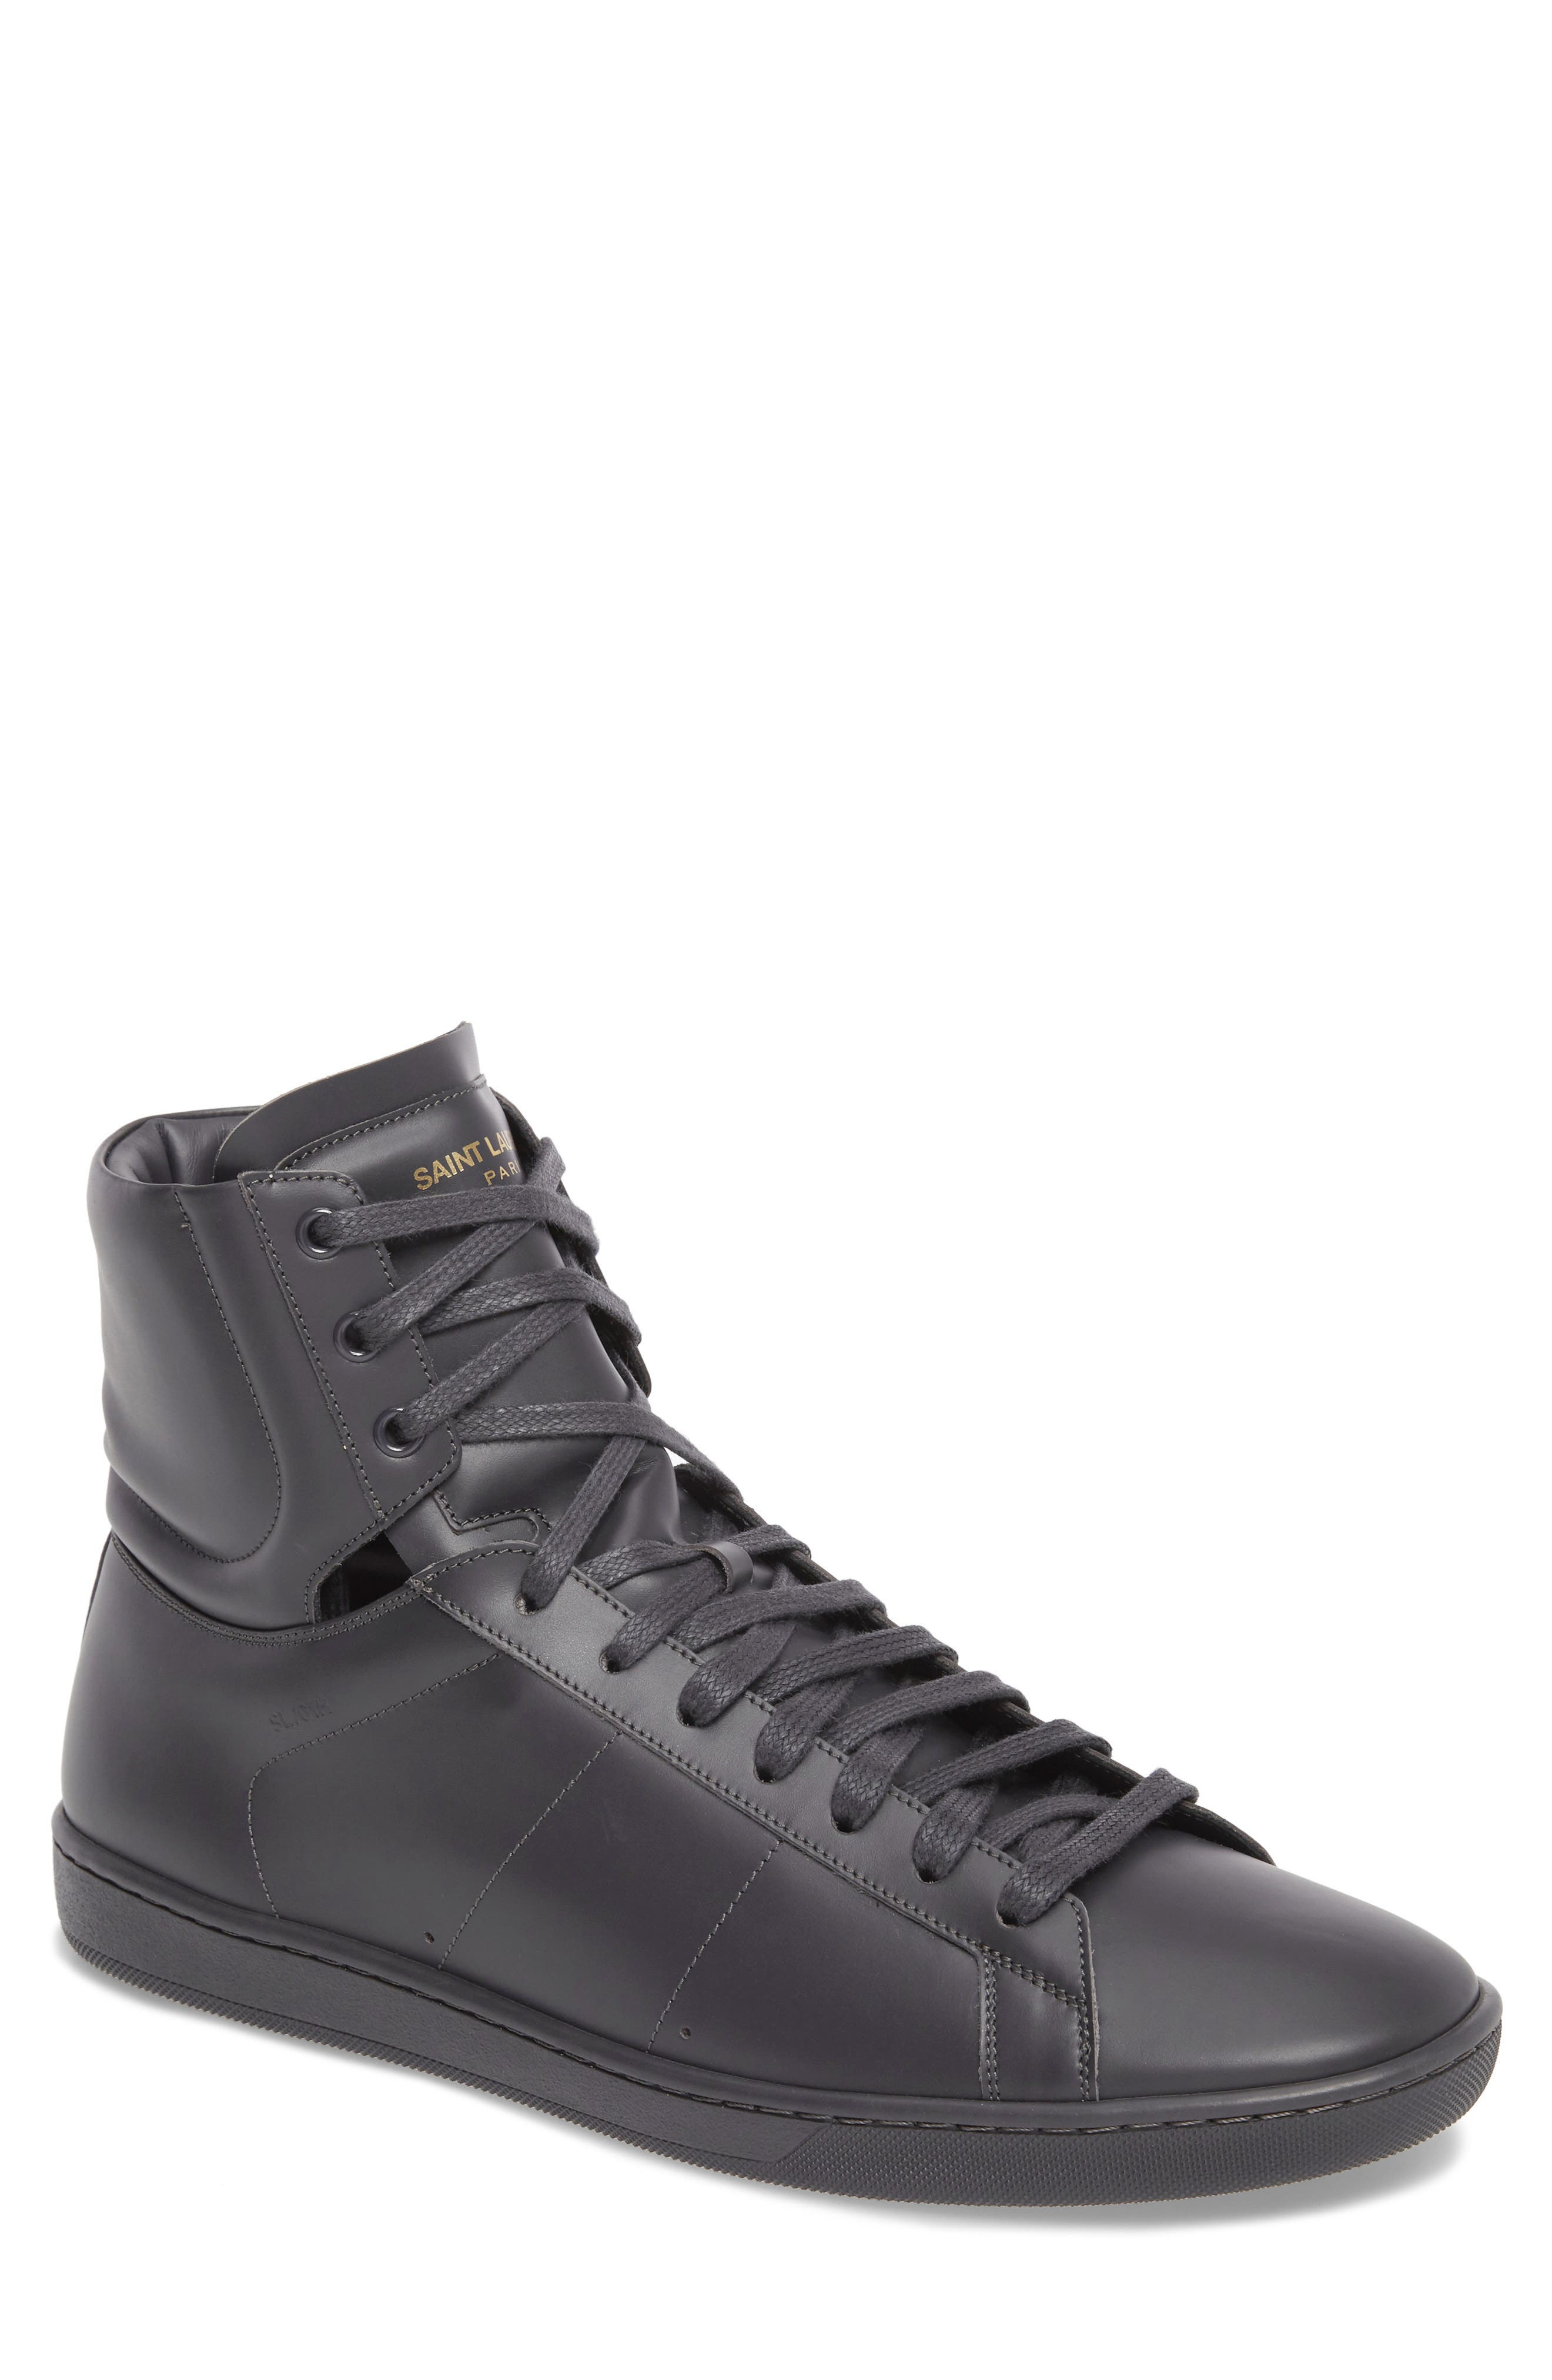 Signature Court Classic Sneaker,                         Main,                         color, Grey Leather